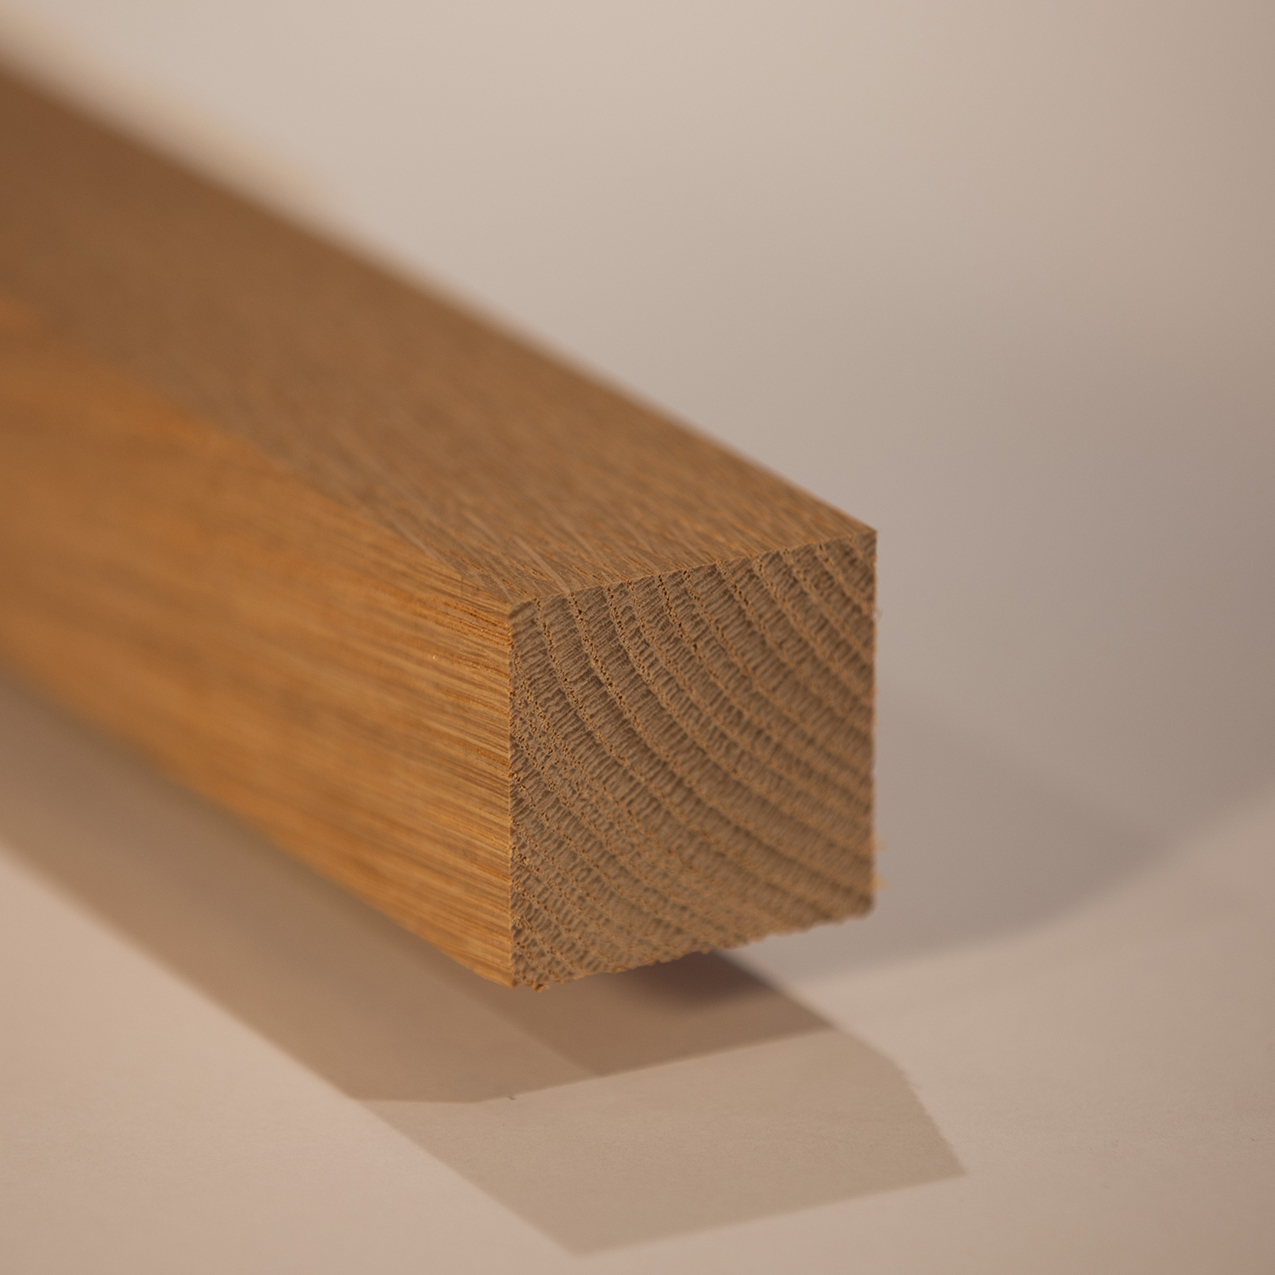 American White Oak PAR/PSE Square Edge